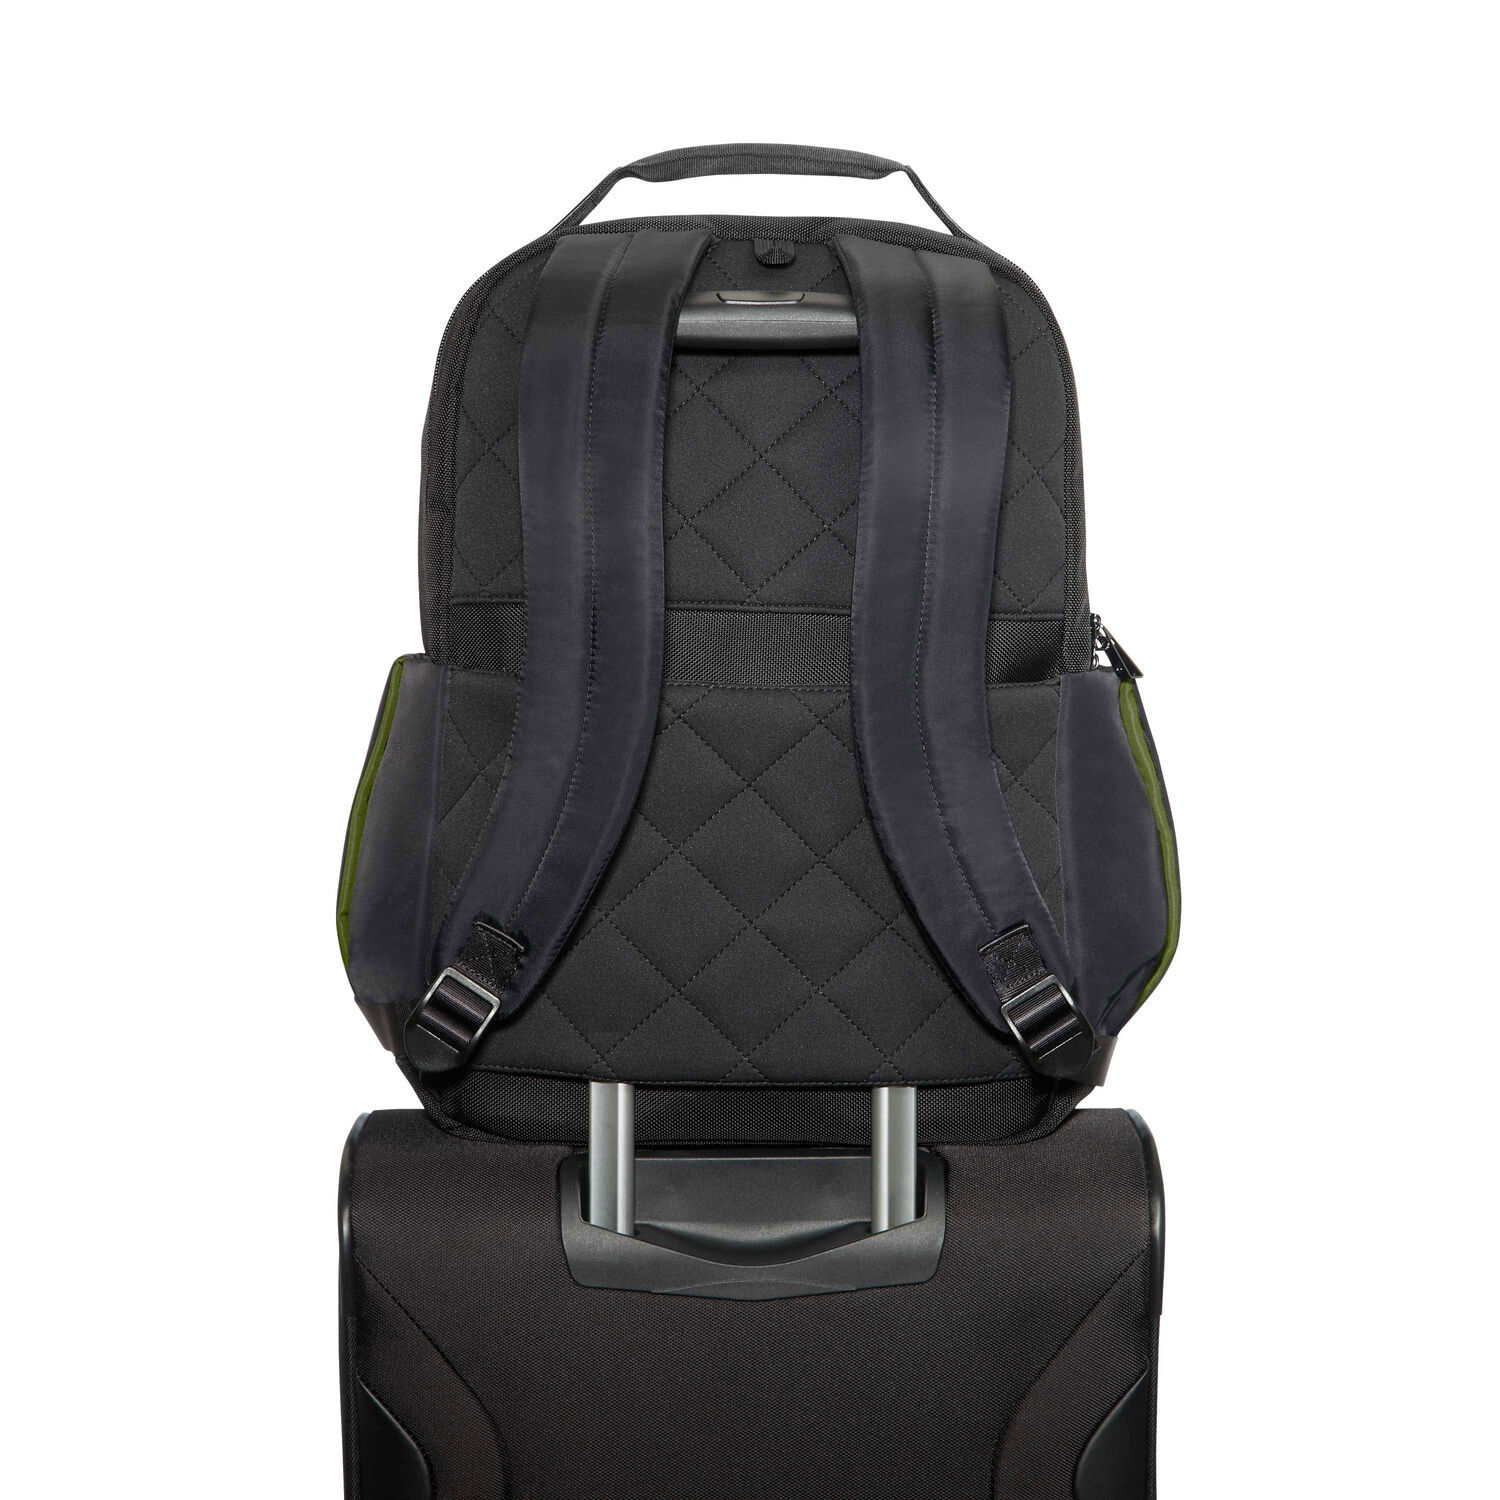 7f6bba45be Samsonite Openroad 15.6 quot  Laptop Backpack in the color Jet Black.